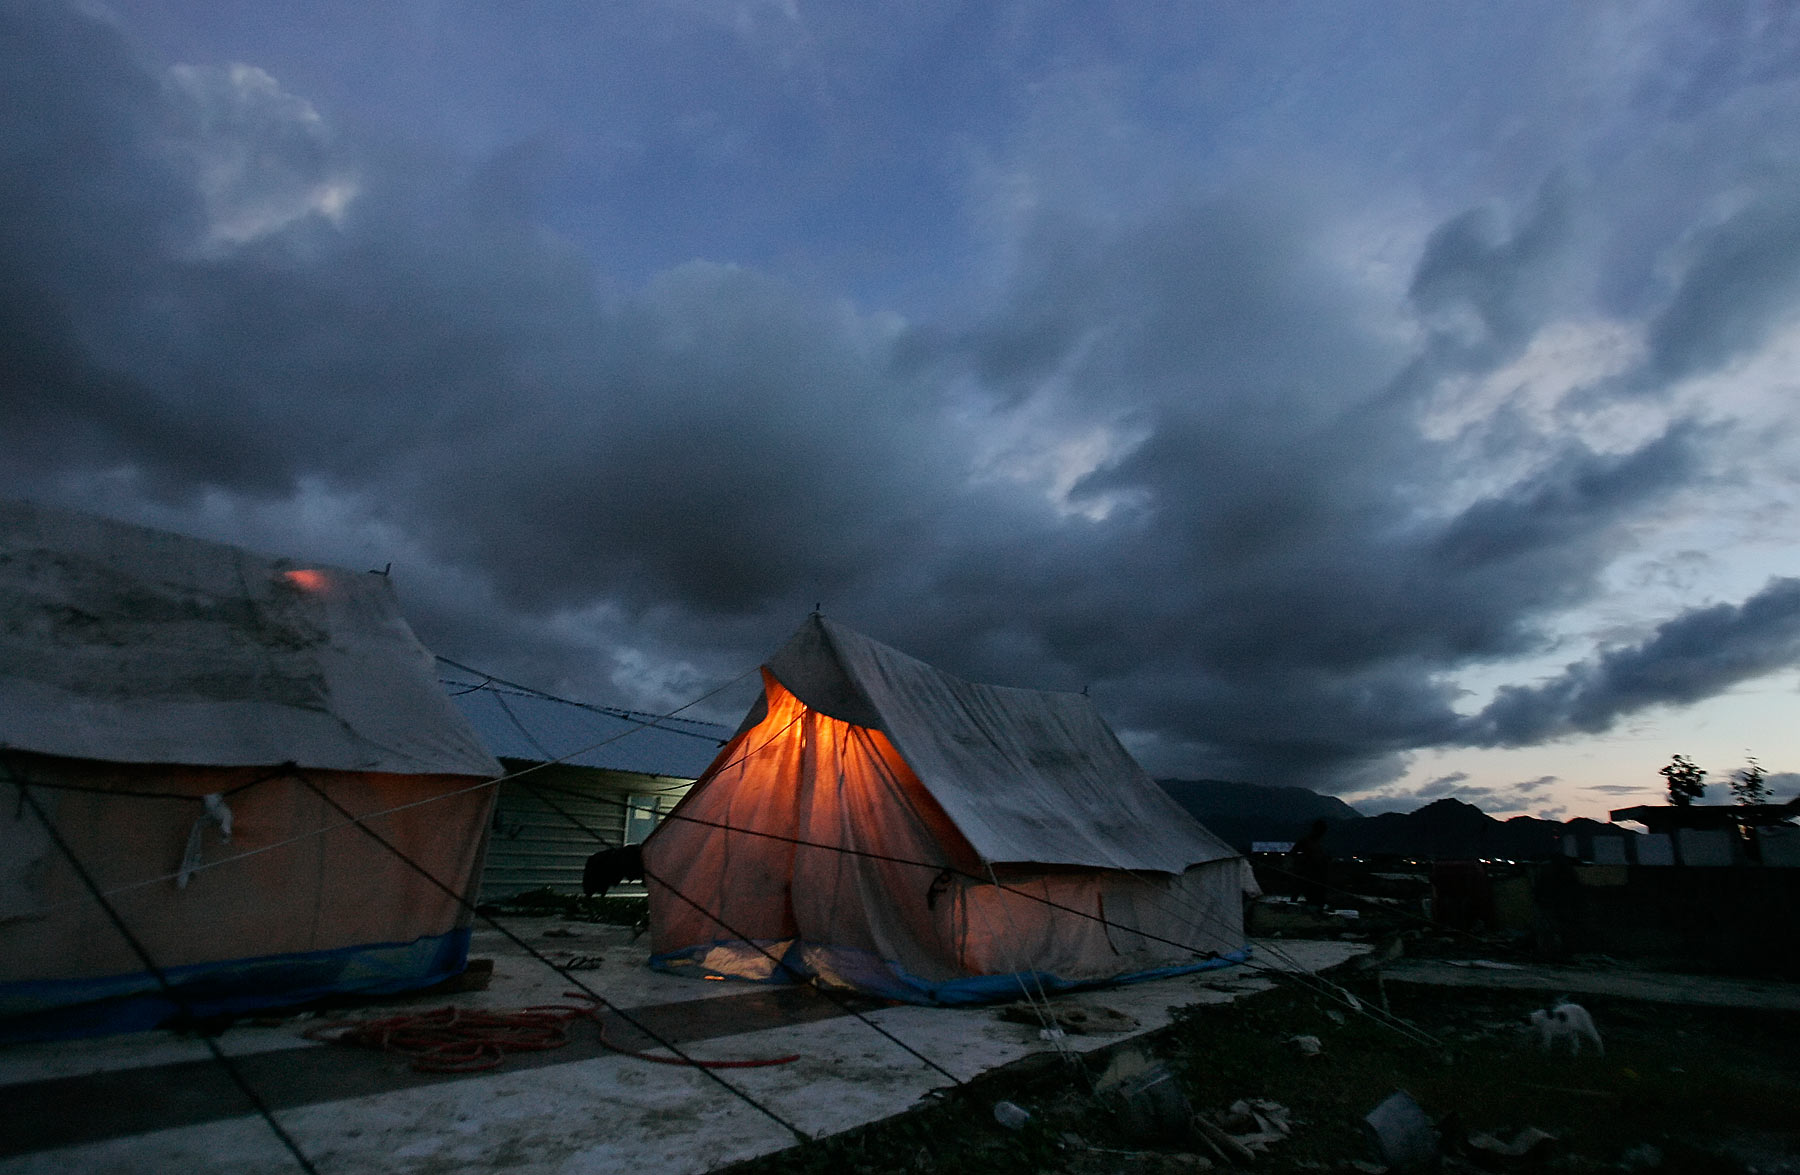 Aceh refugees from Asian Tsunami sleep in tents